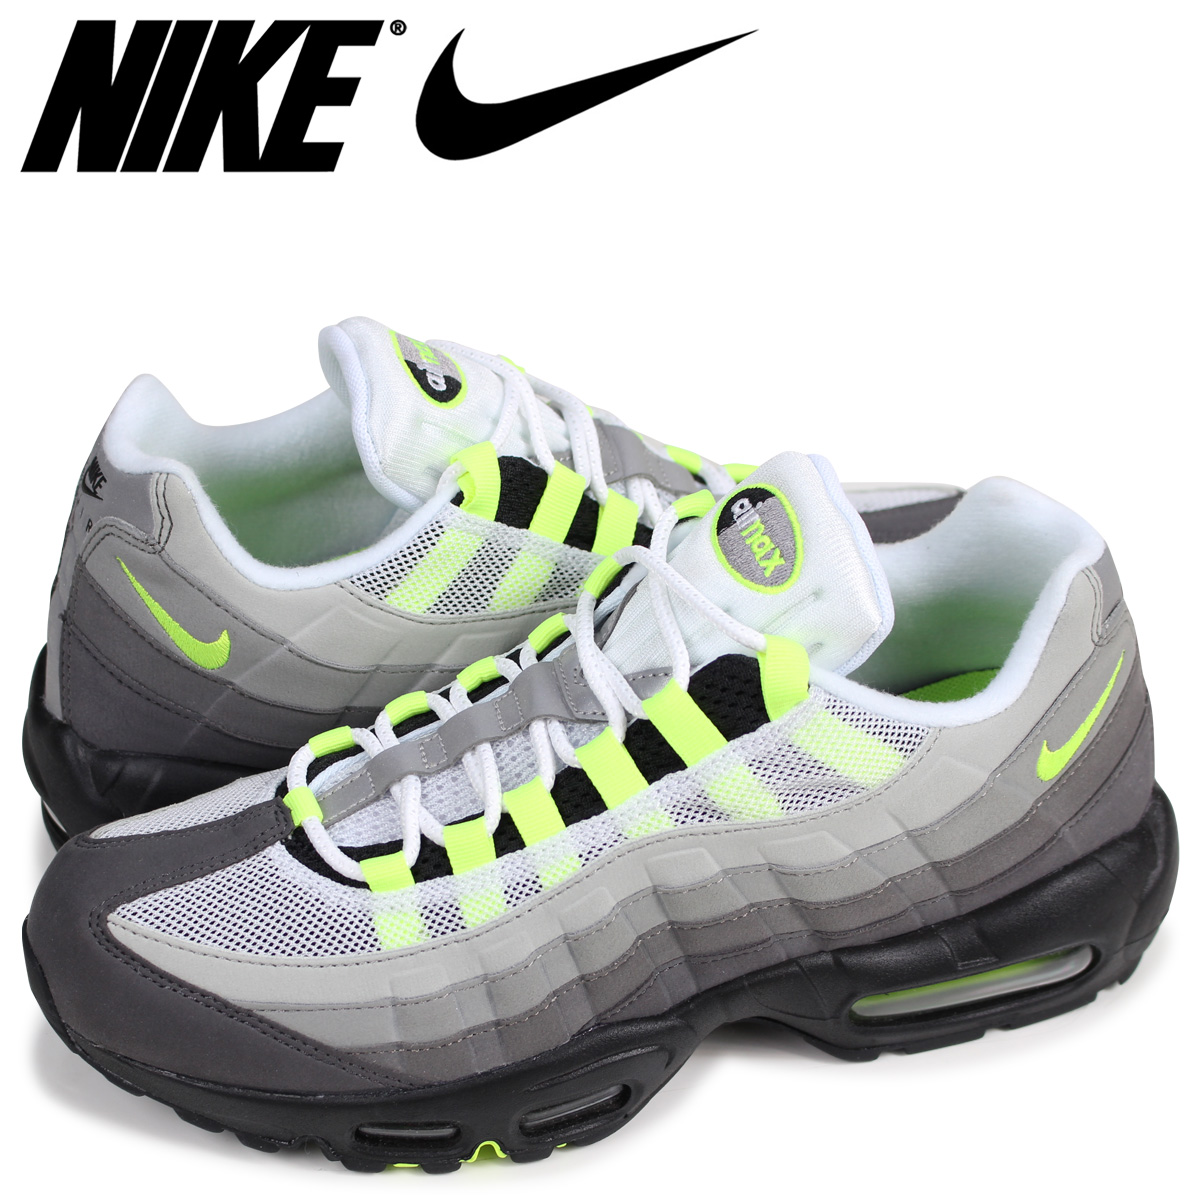 879ef17c065b SneaK Online Shop  Nike NIKE Air Max 95 sneakers men AIR MAX 95 OG ...